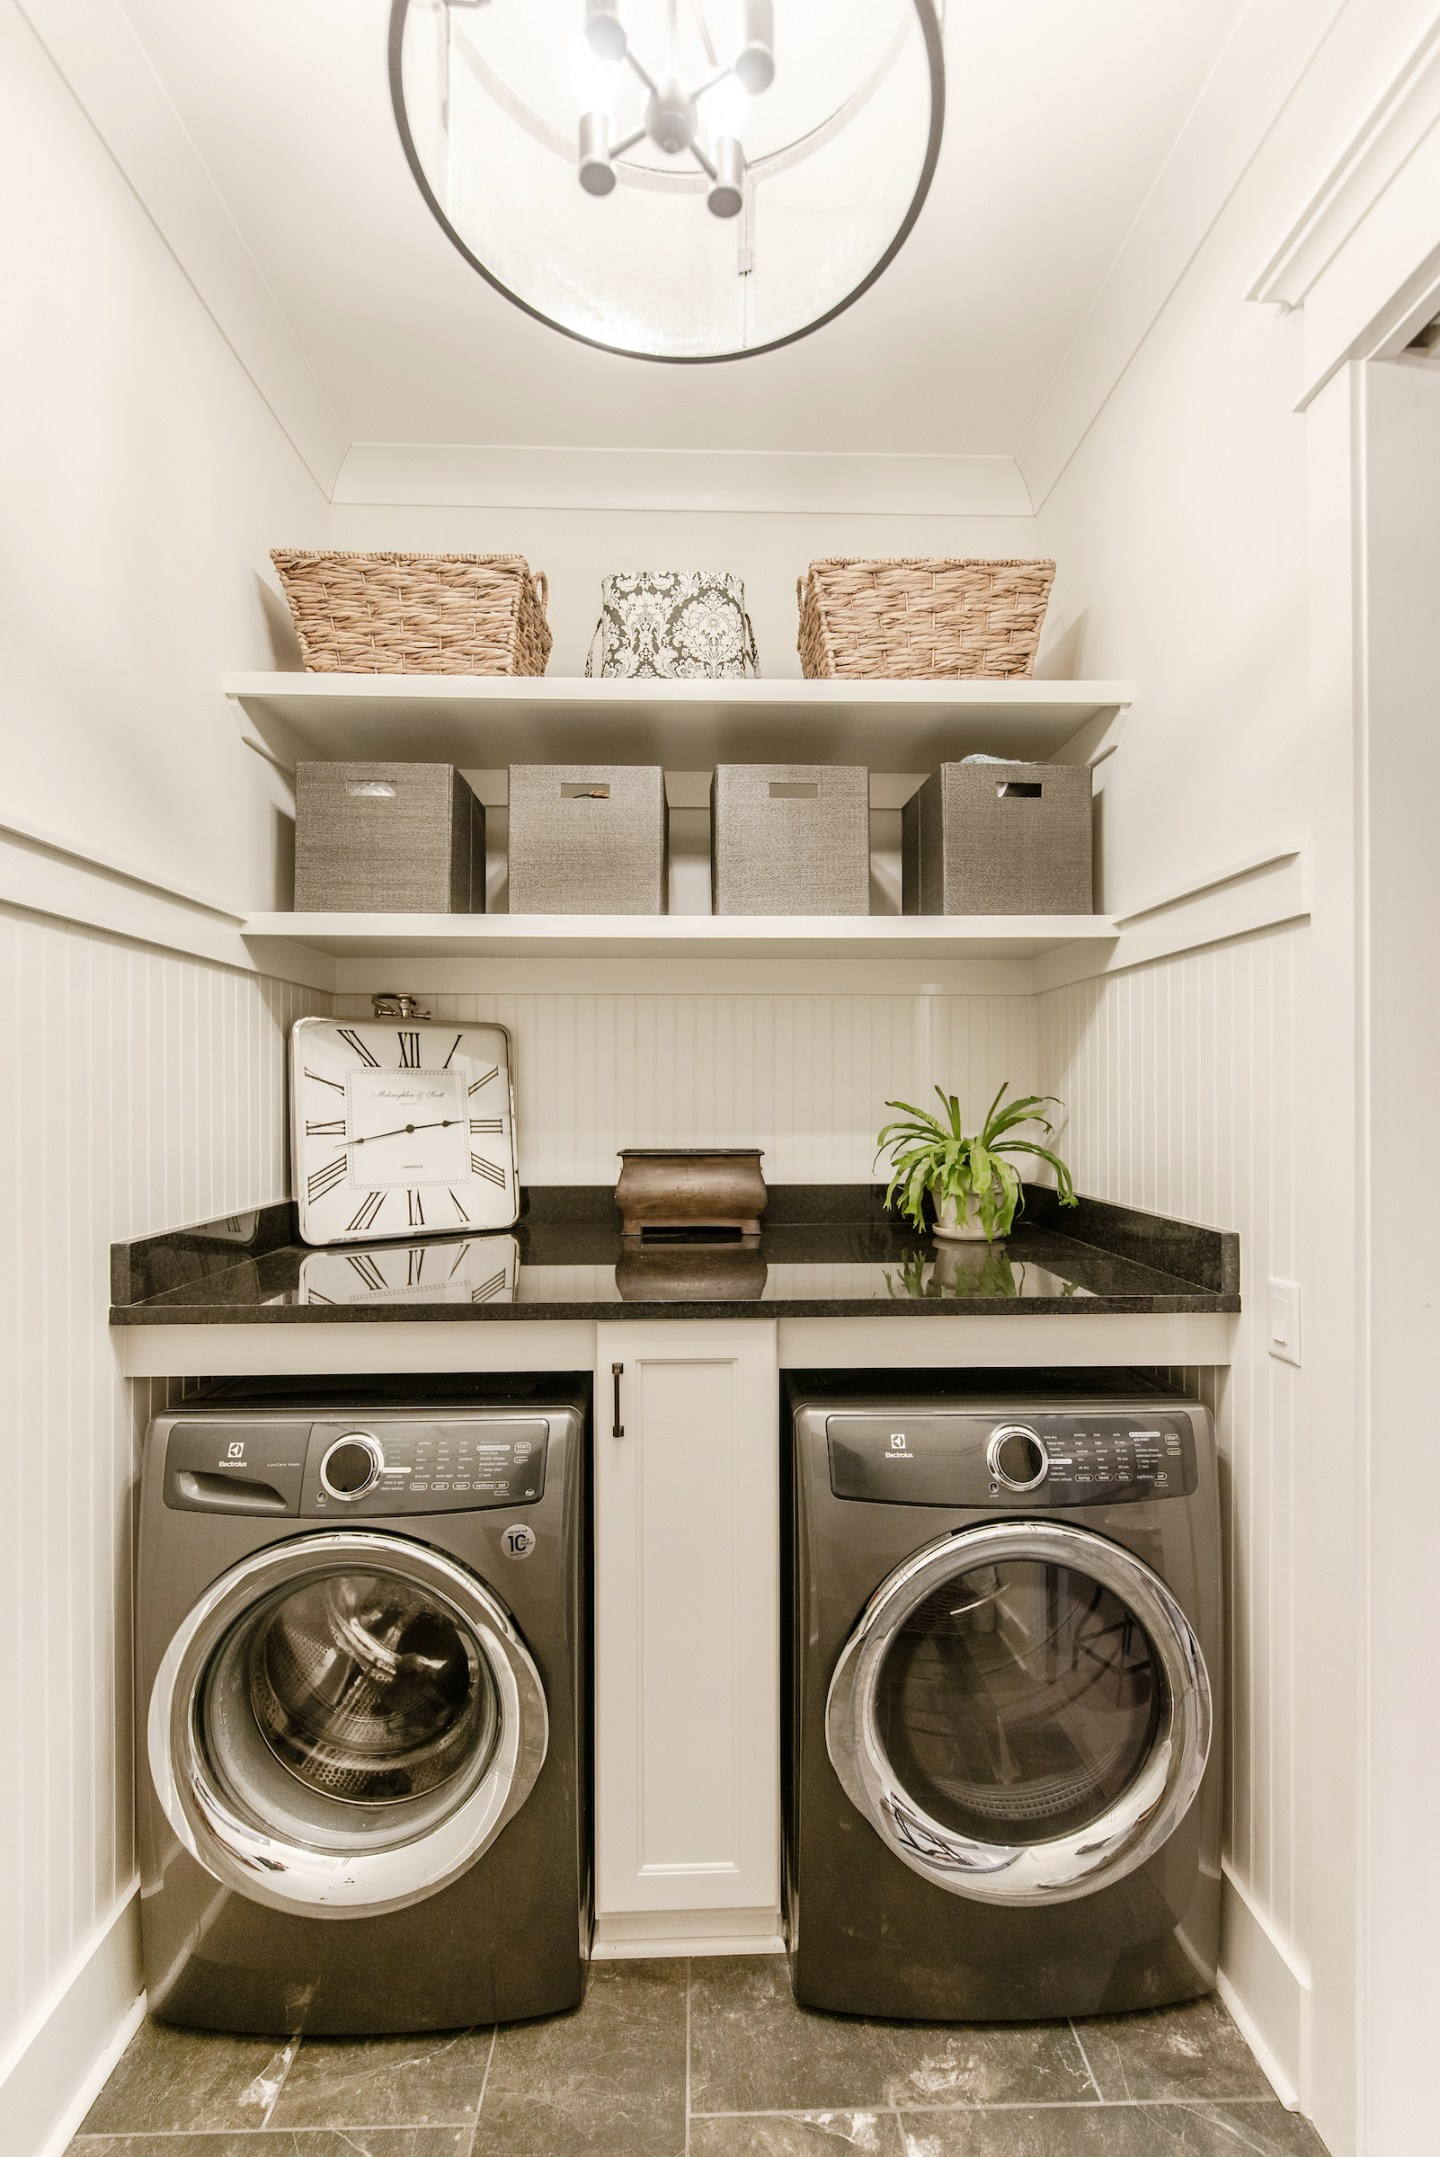 The Isle Home - Home Tour - Laundry Room